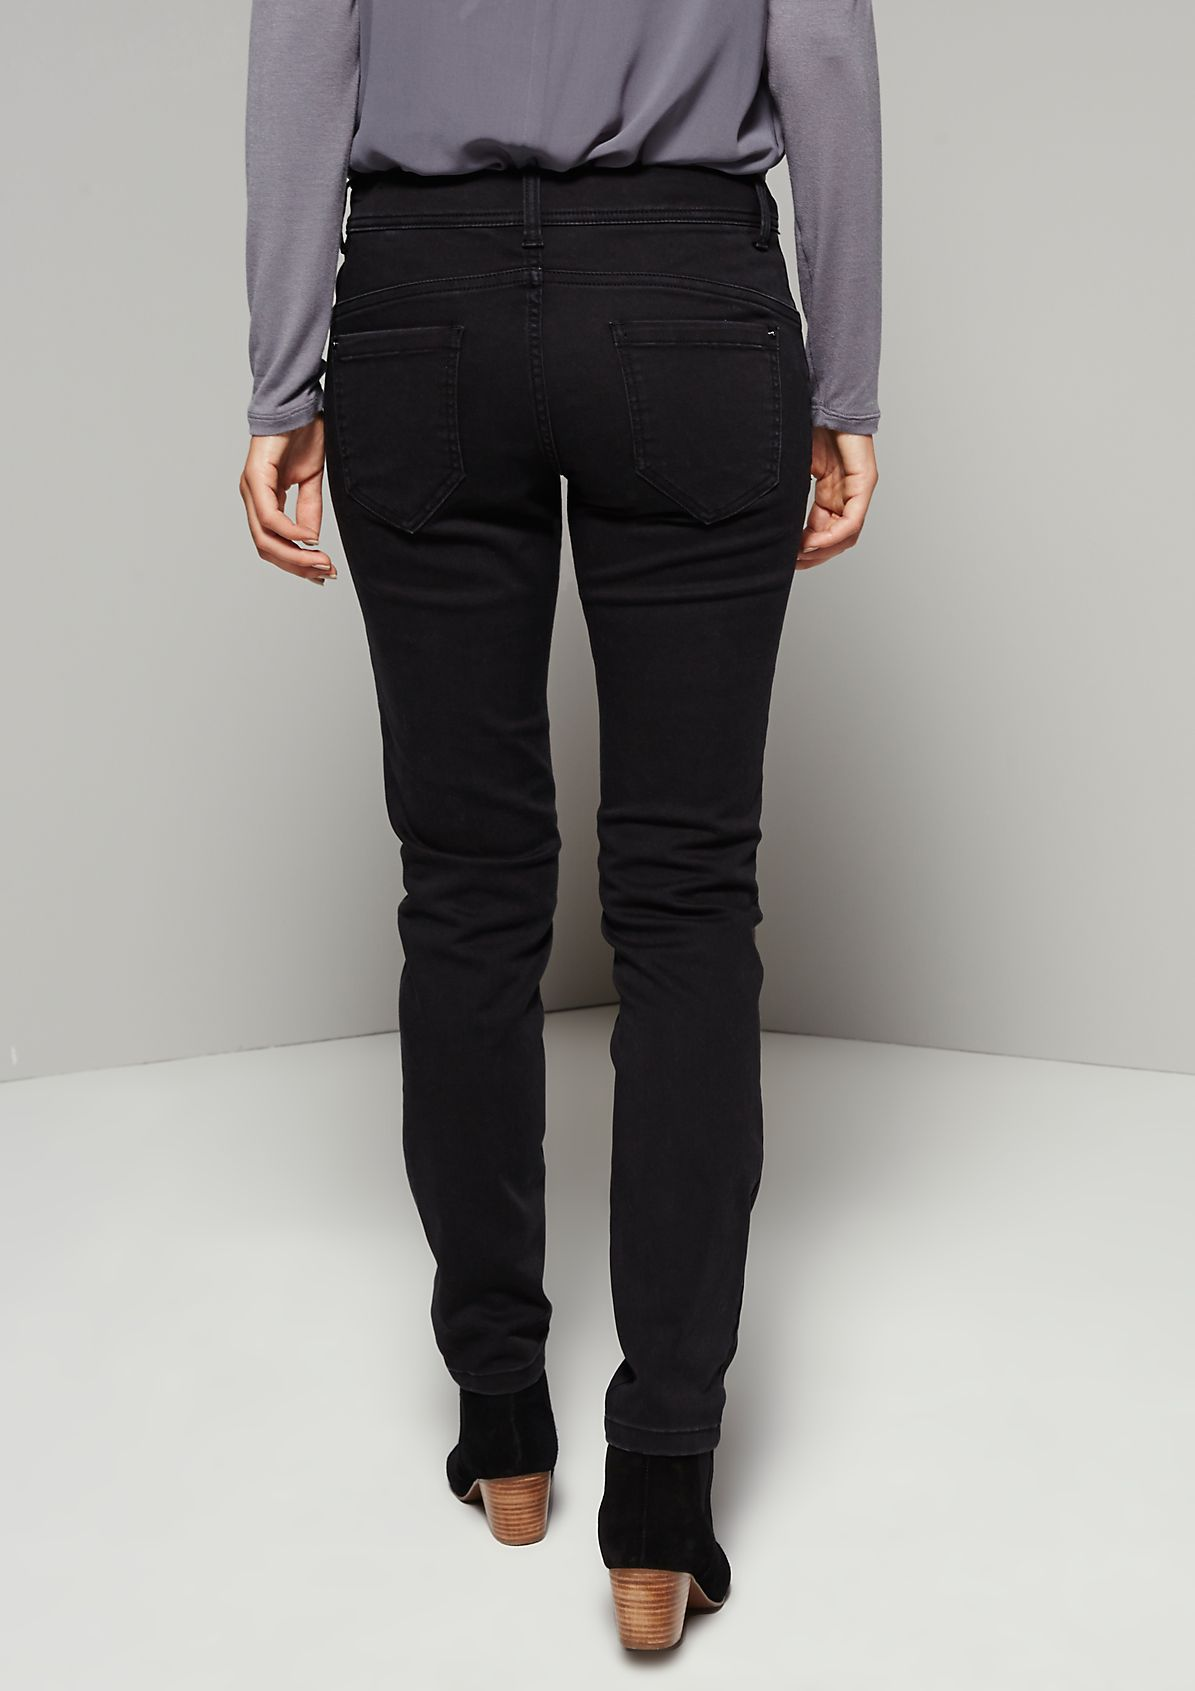 Elegant five-pocket jeans in an exciting garment wash from s.Oliver